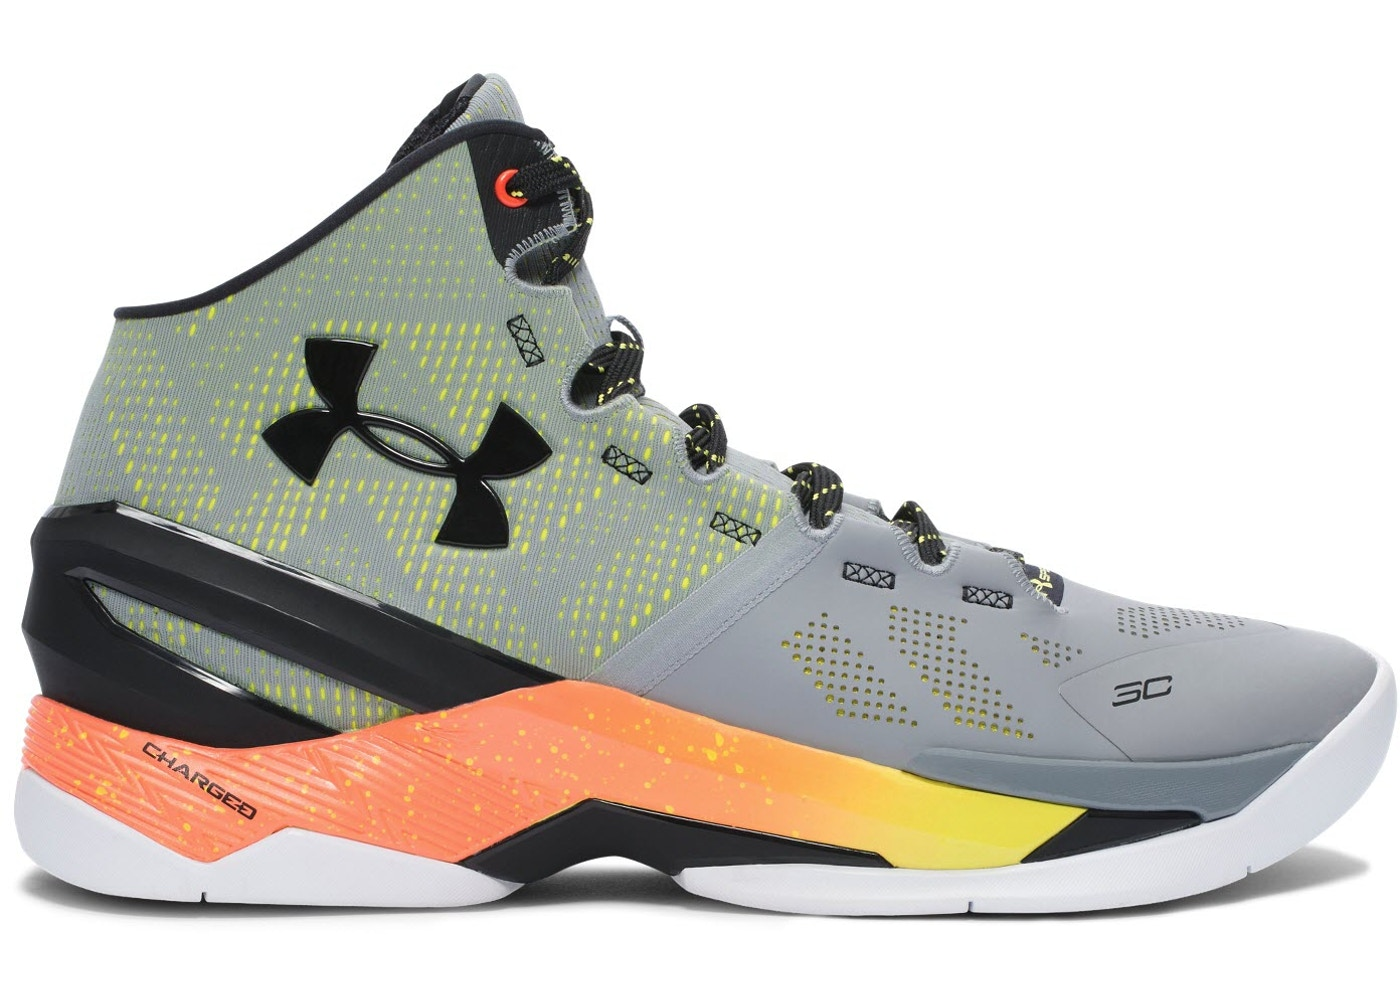 74a11e18b31 Buy Under Armour Shoes   Deadstock Sneakers